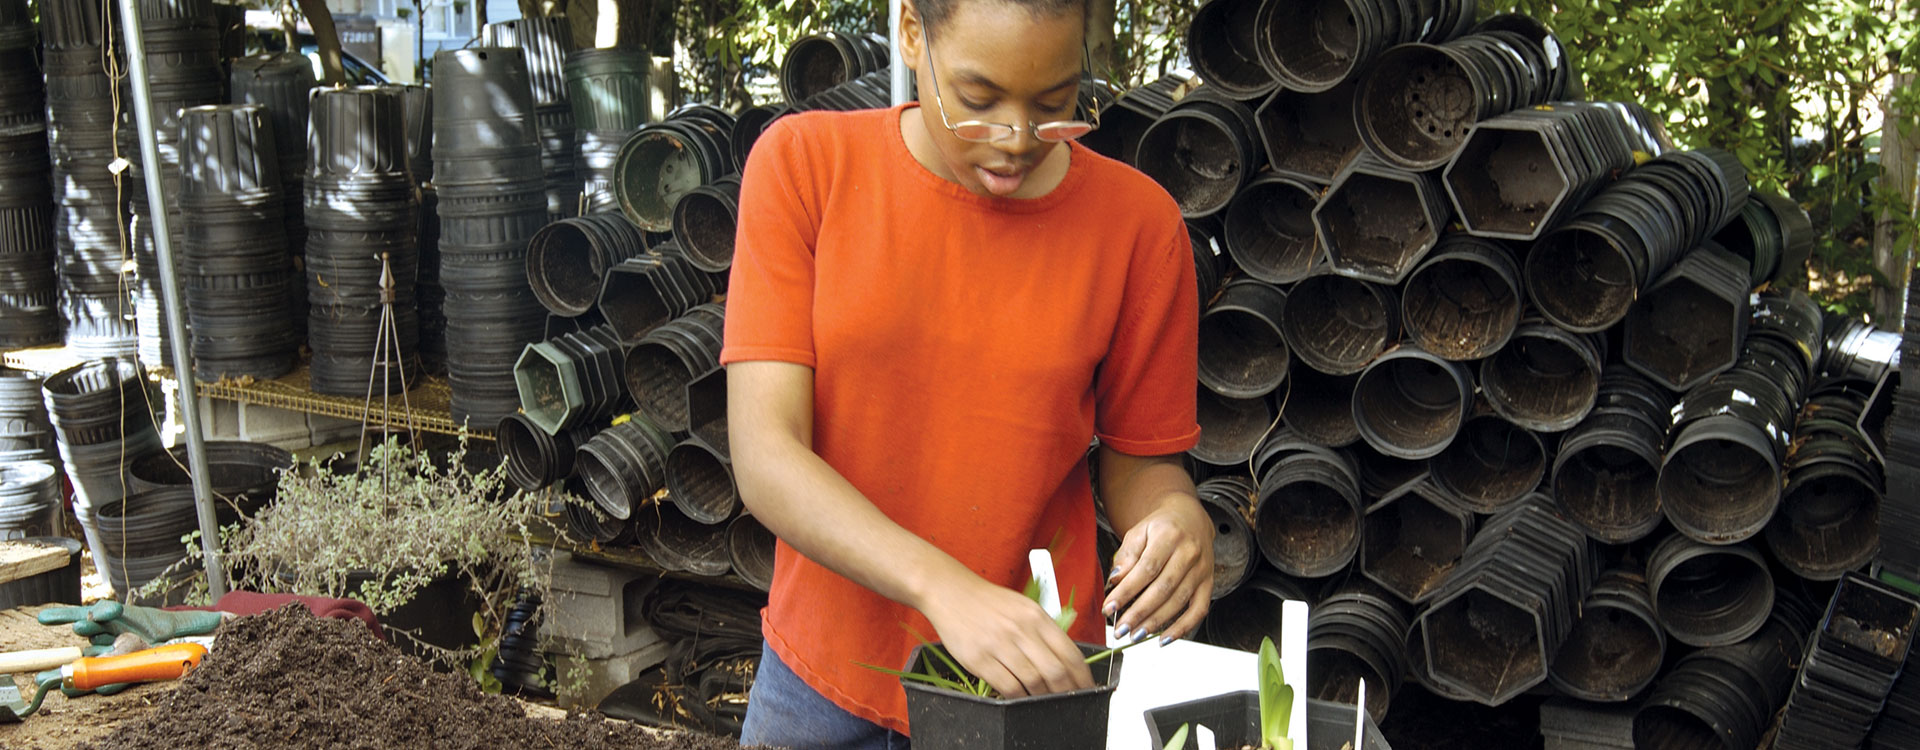 An image of a young woman learning gardening skills through potting plants. The background shows a wall of plastic plant pots.